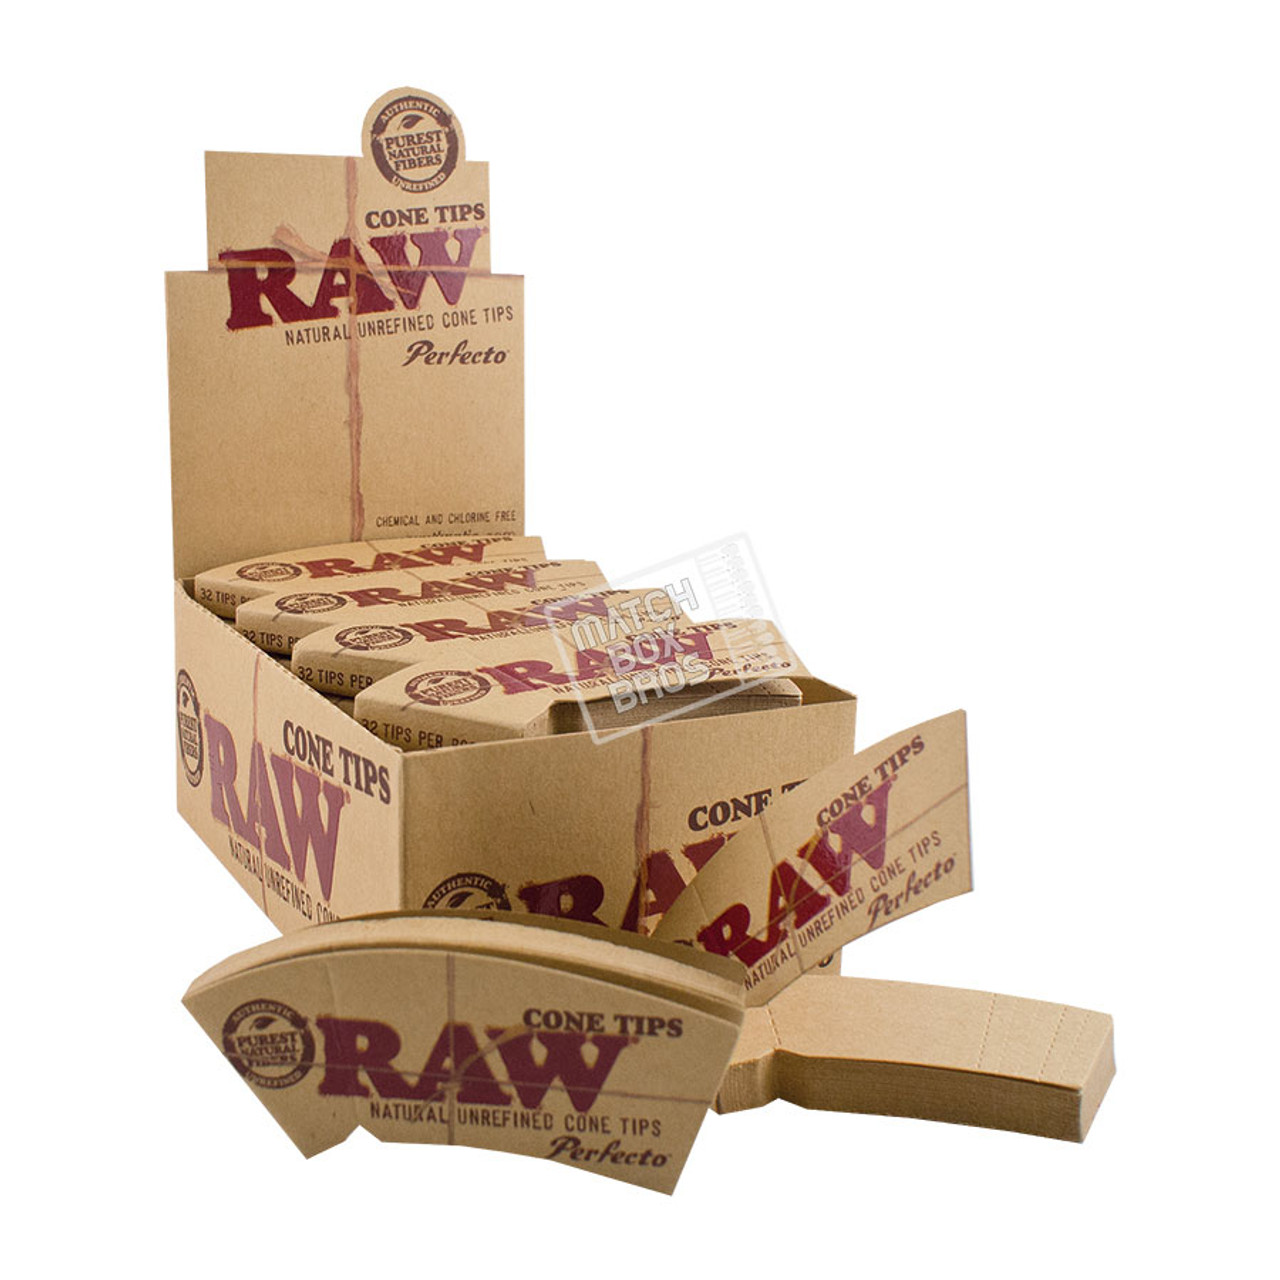 RAW Cone Tip Perfecto Pack Box